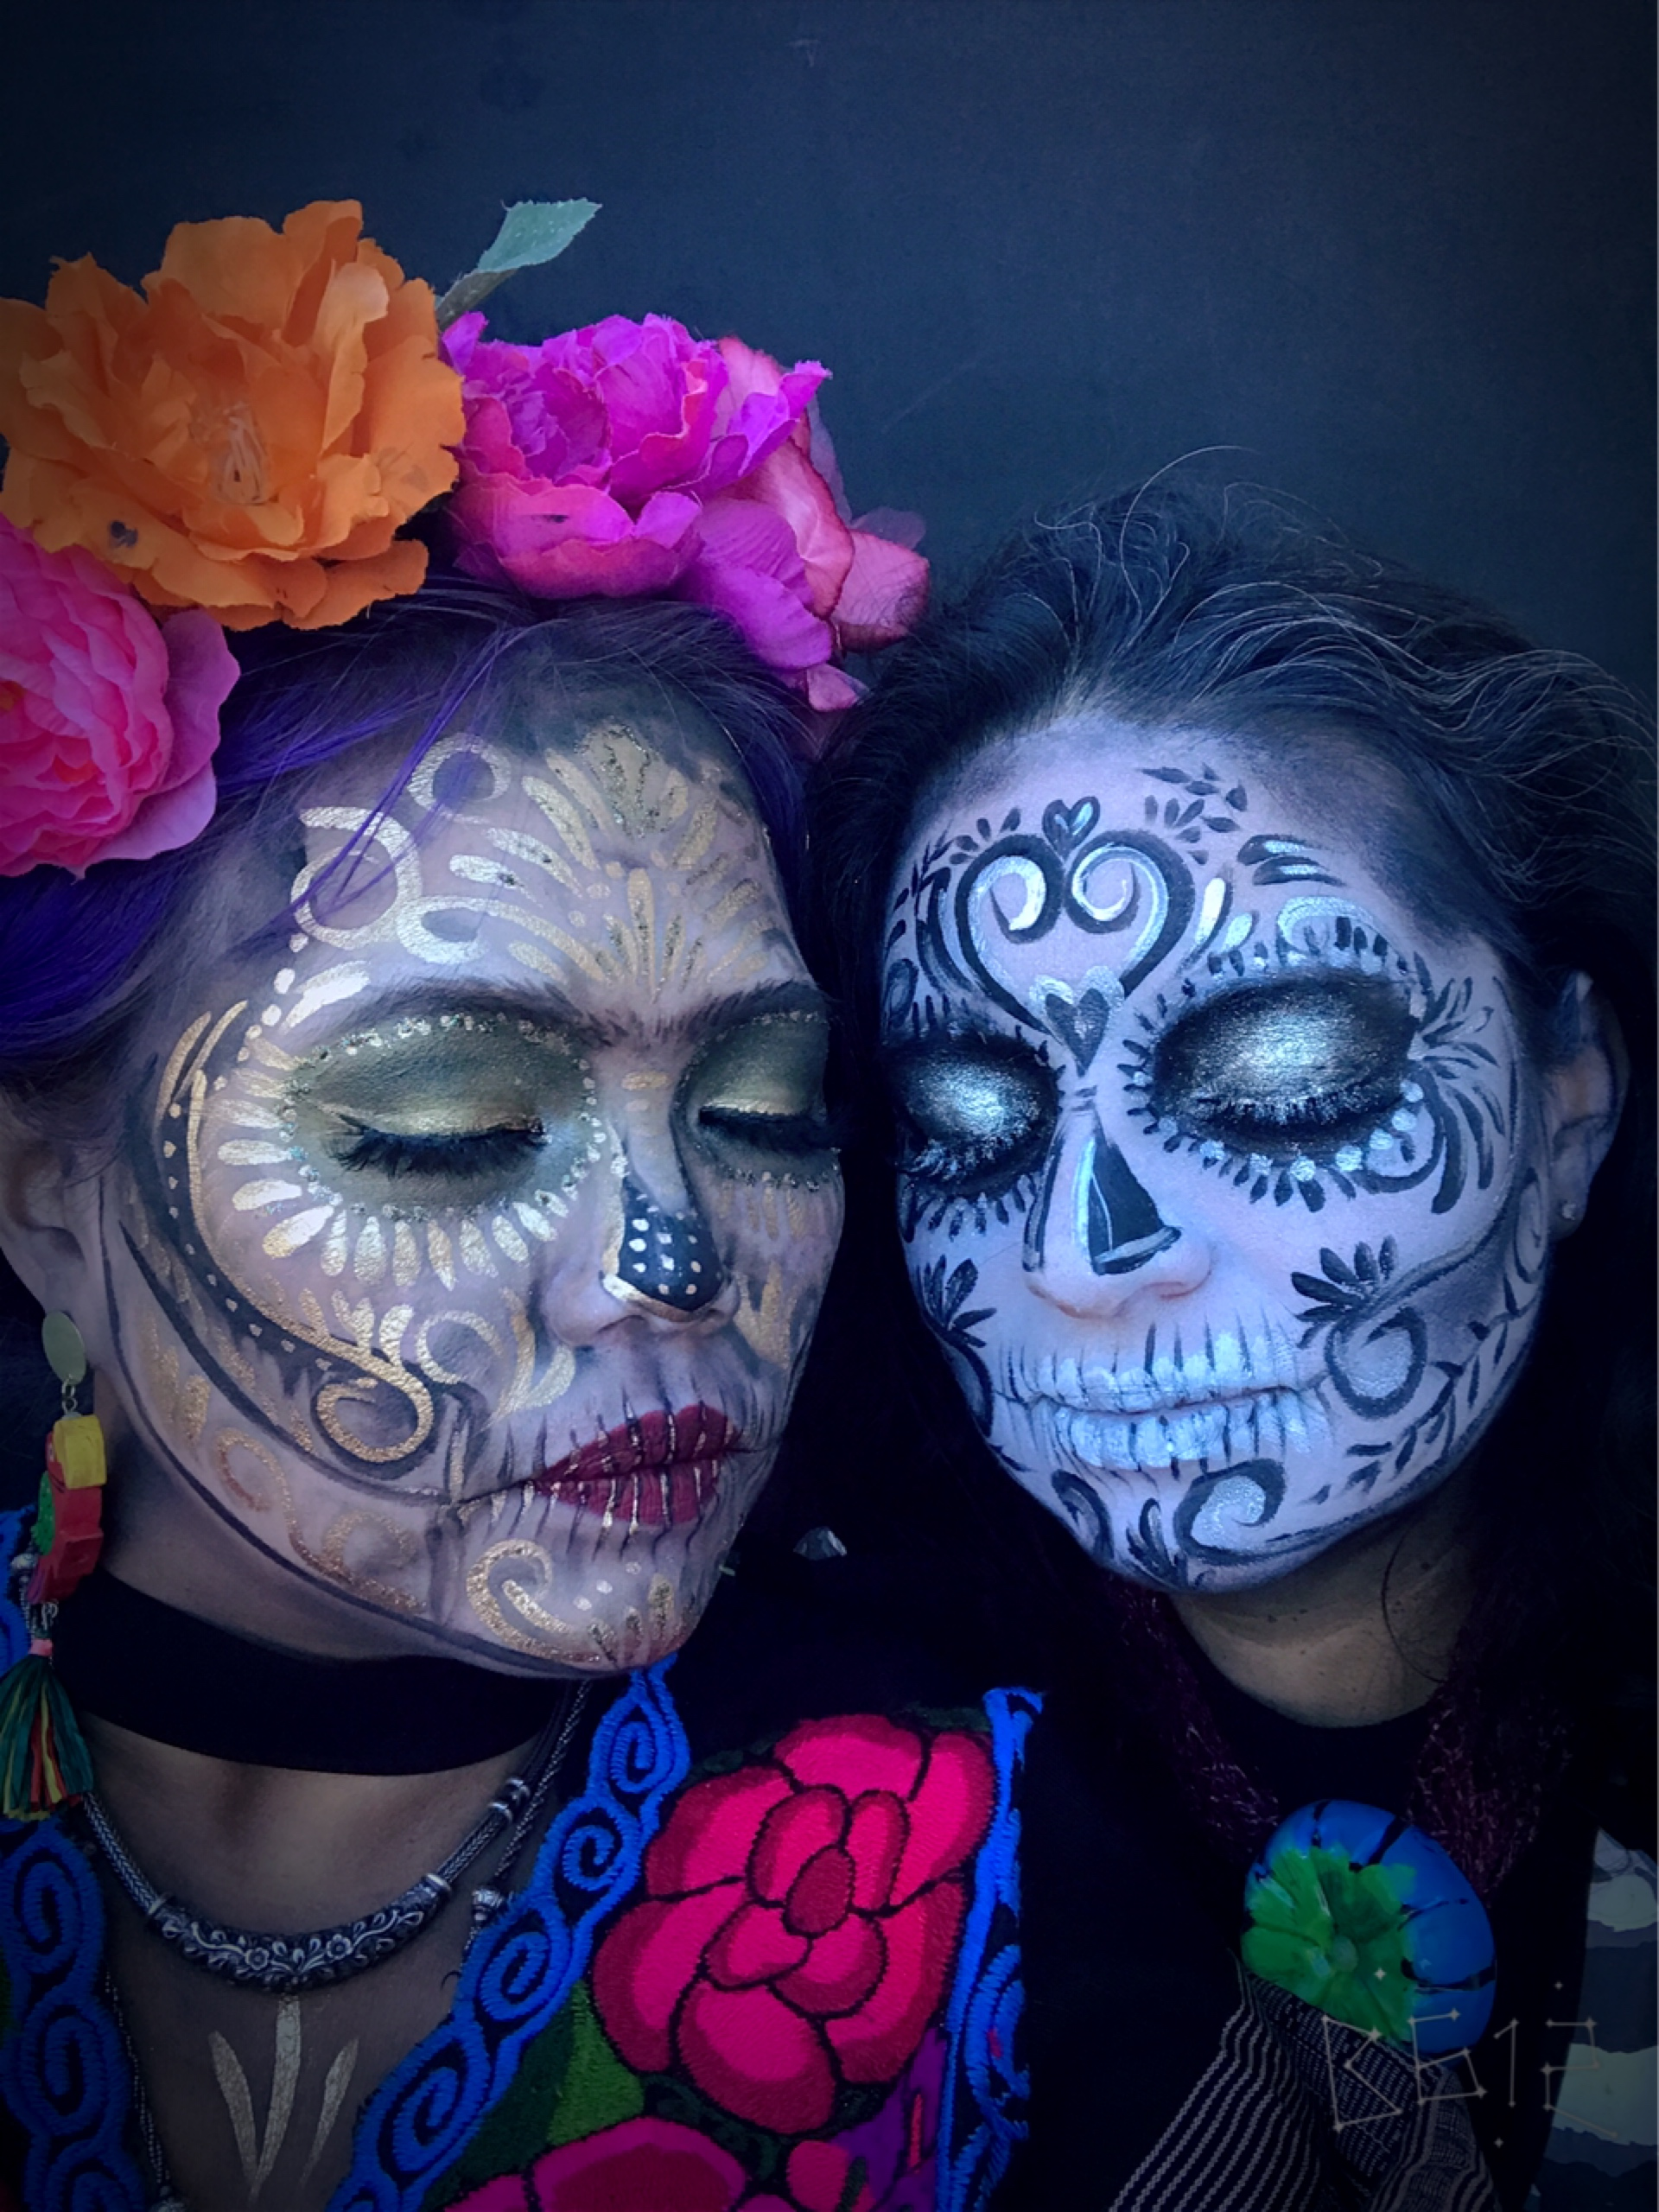 Day of the Dead, dia de los muertos, La Catarina